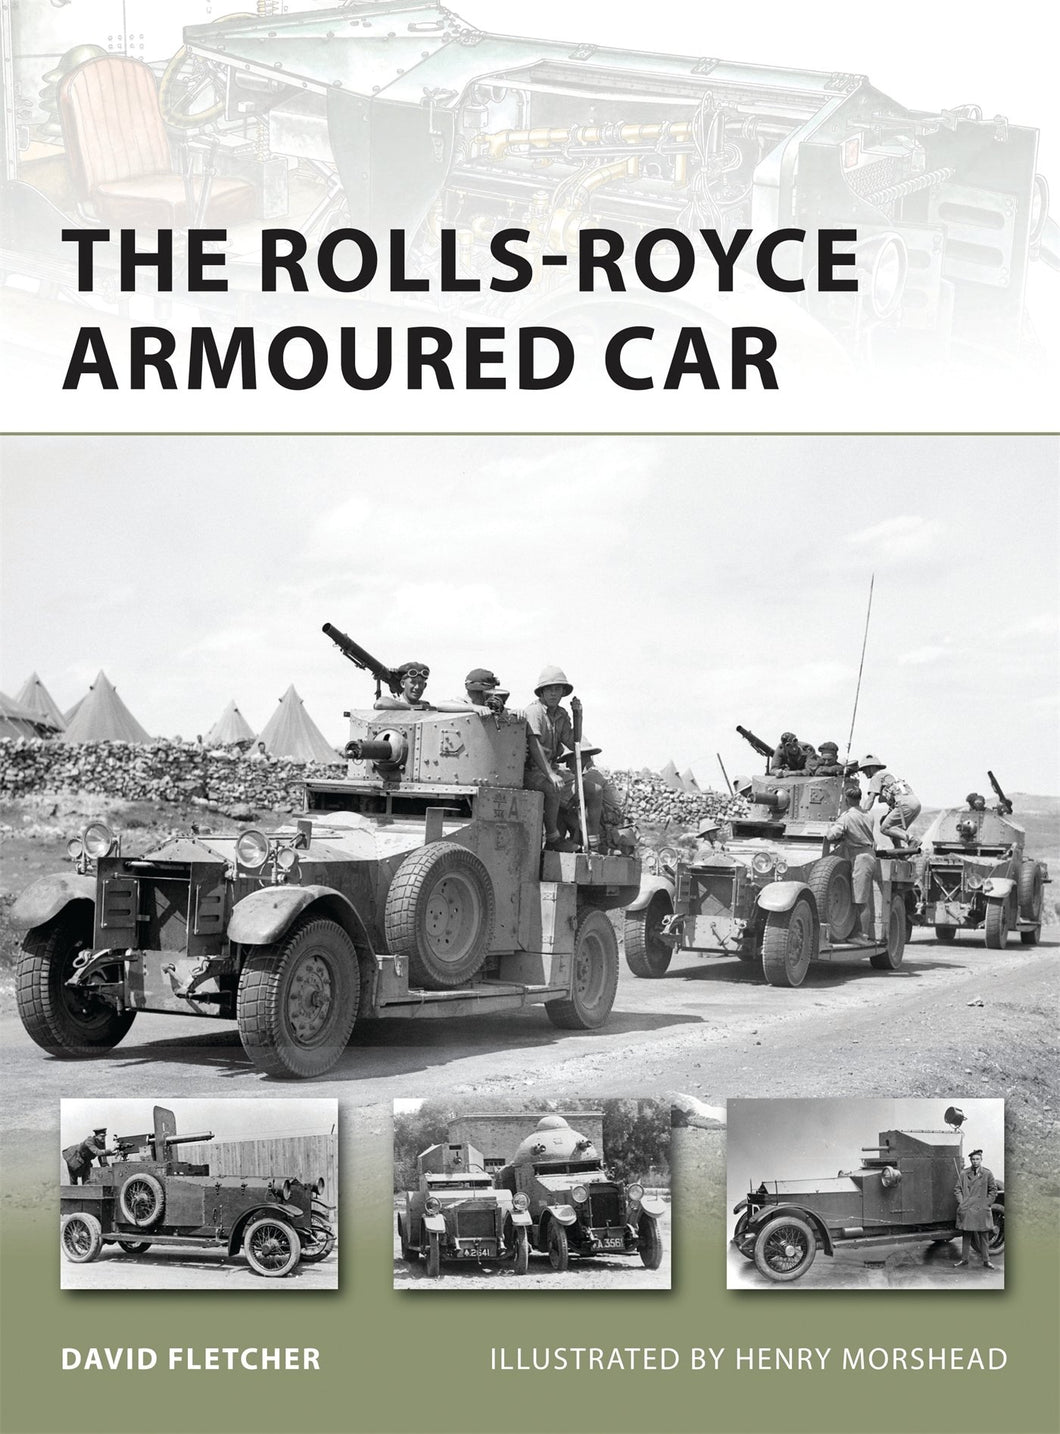 The Rolls-Royce Armoured Car - The Tank Museum